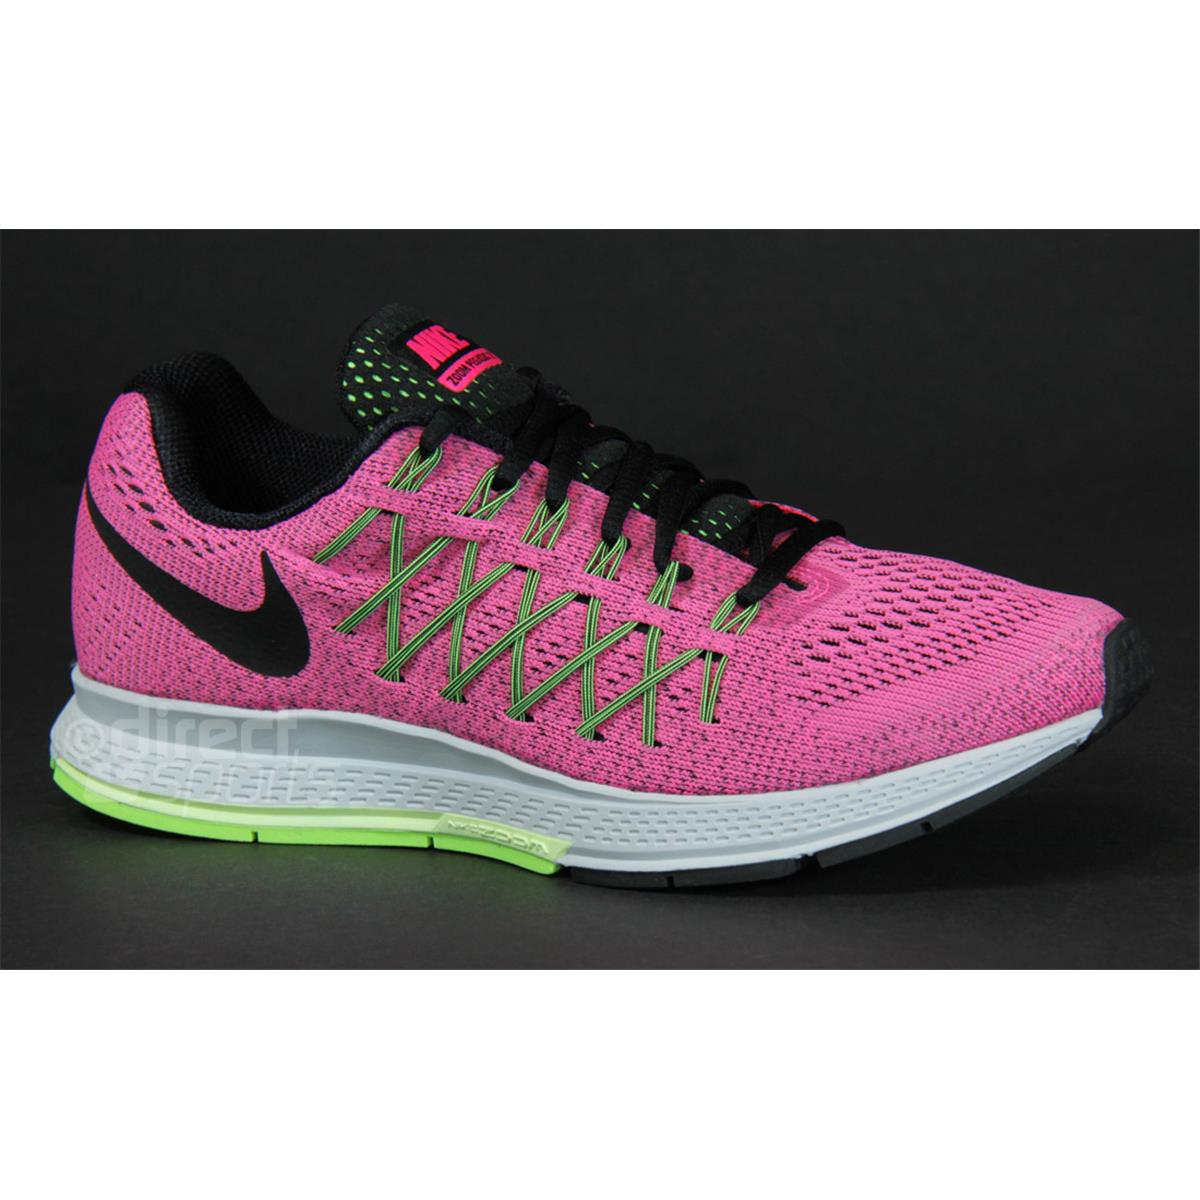 competitive price 5ad0a 7da70 Nike Air Zoom Pegasus 32 Womens Running Shoes (Pink). Star Star Star Star  Star. Be the first to write a review. Image